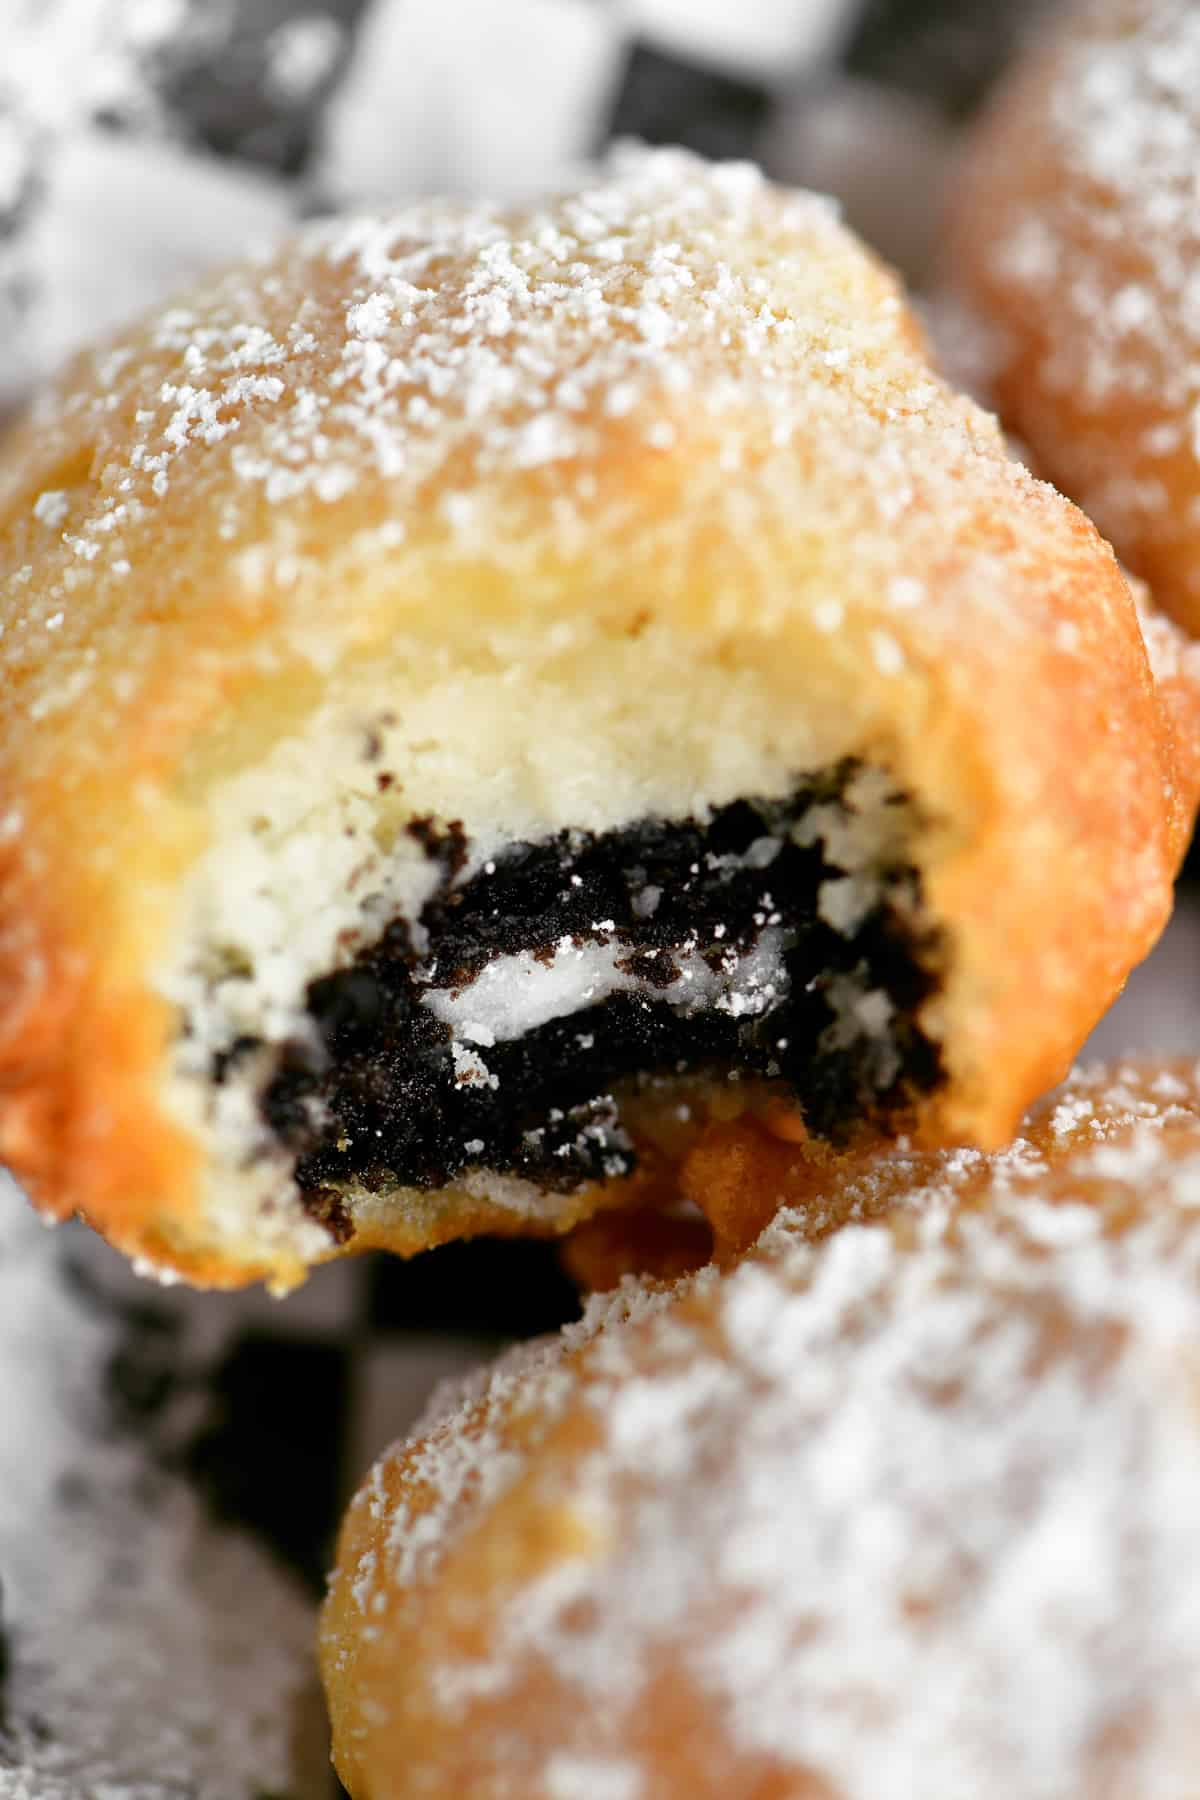 a close up image of a fried Oreo cookie with a bite out of it